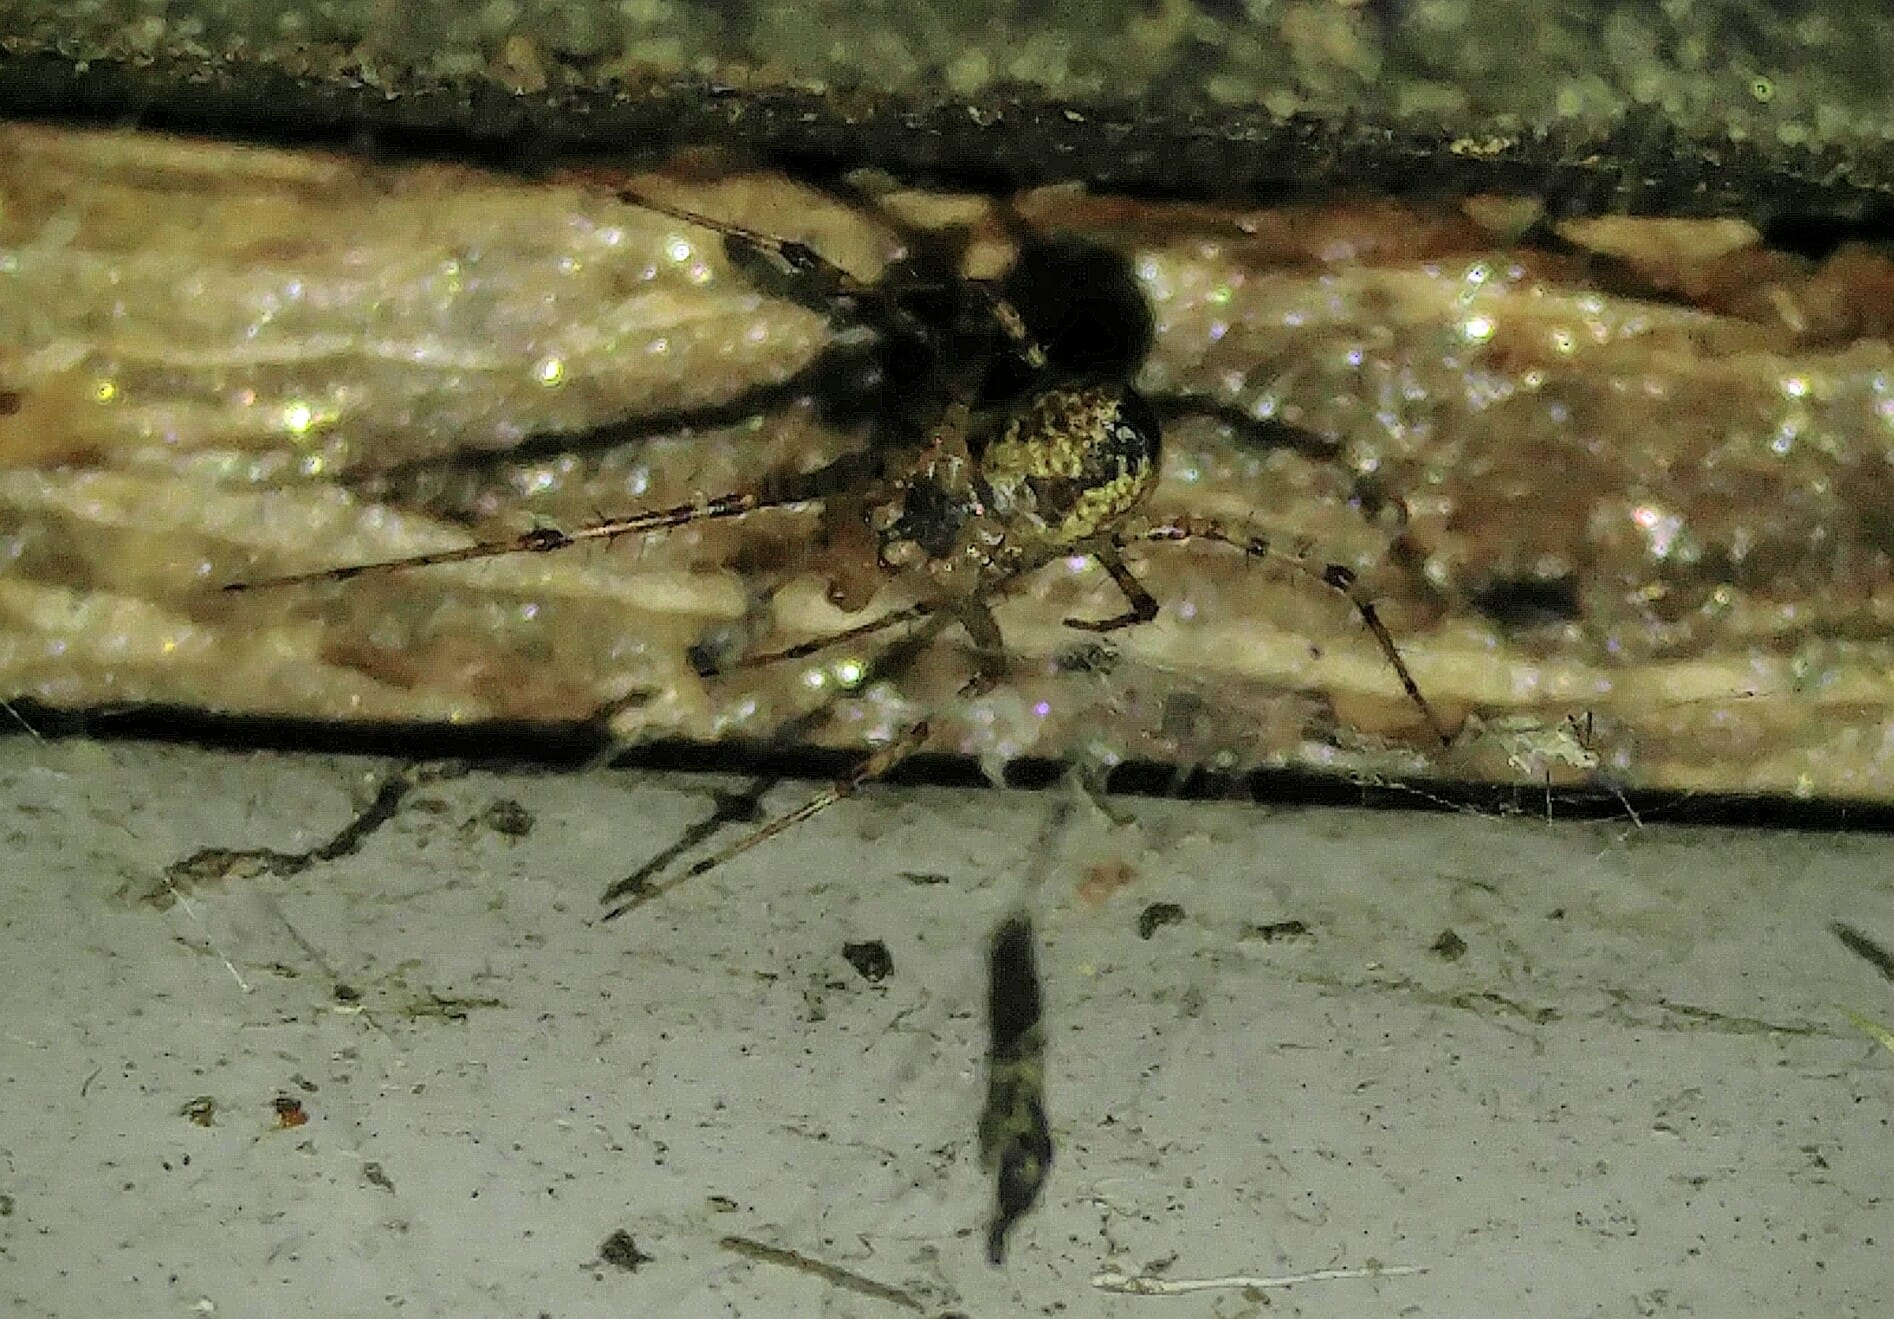 Picture of Pityohyphantes costatus (Hammock Spider) - Male - Ventral